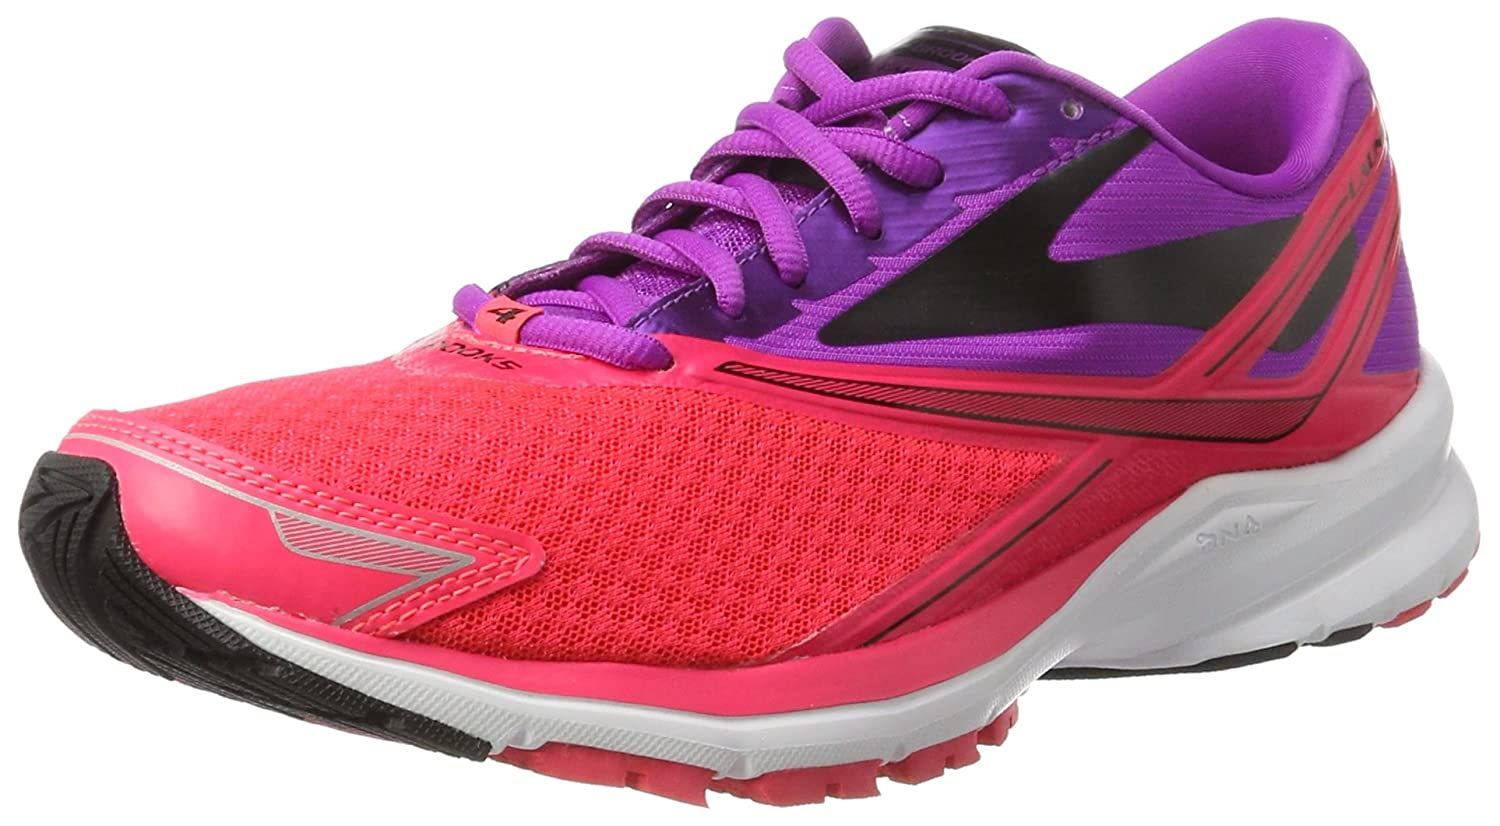 Brooks Womens Launch 4 B01GEZU6VC 7 B(M) US|Purple Cactus Flower/Diva Pink/Black